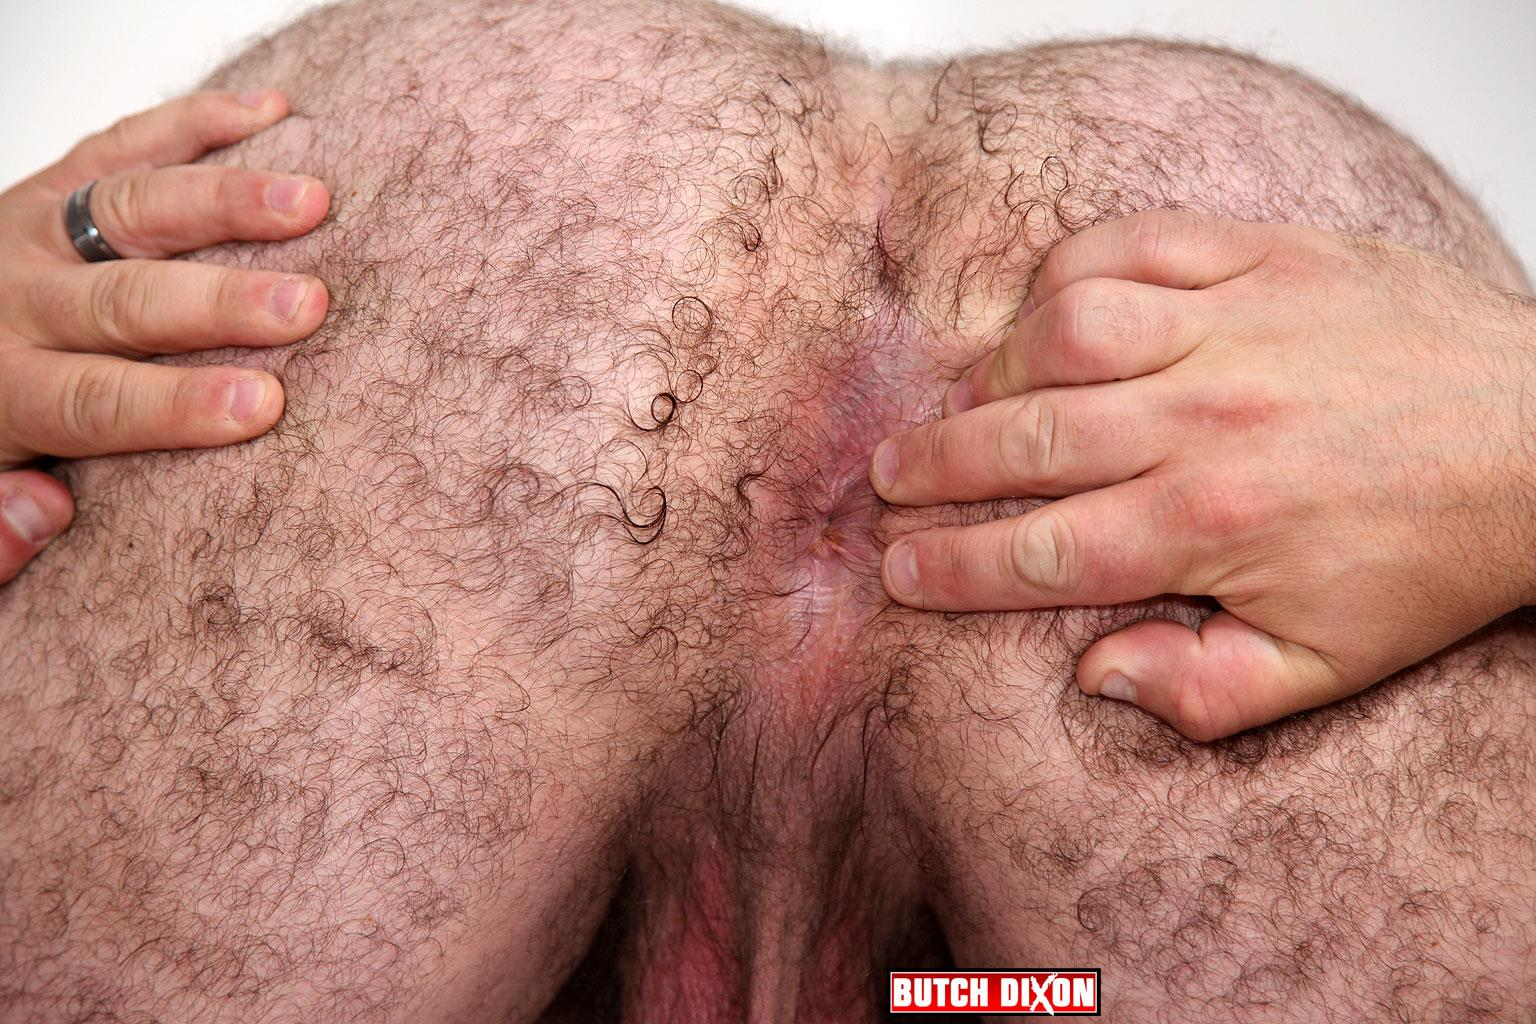 Butch Dixon Tommo Hawk Chubby Hairy Guy Playing With Big Uncut Cock Amateur Gay Porn 05 Hairy Chubby Bear Plays With His Thick Uncut Cock And Big Hairy Ass